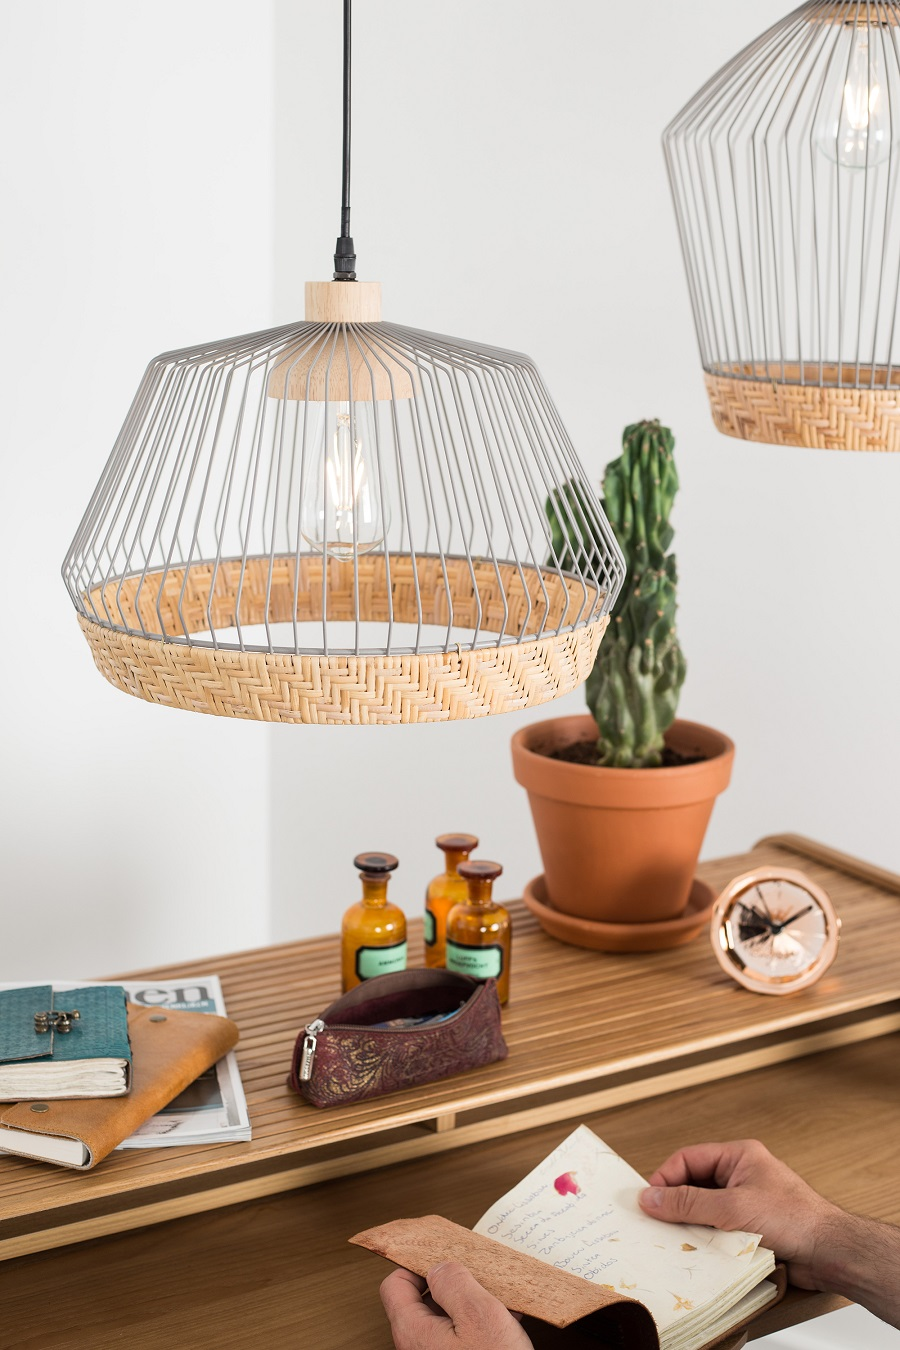 Woven and wire lampshades